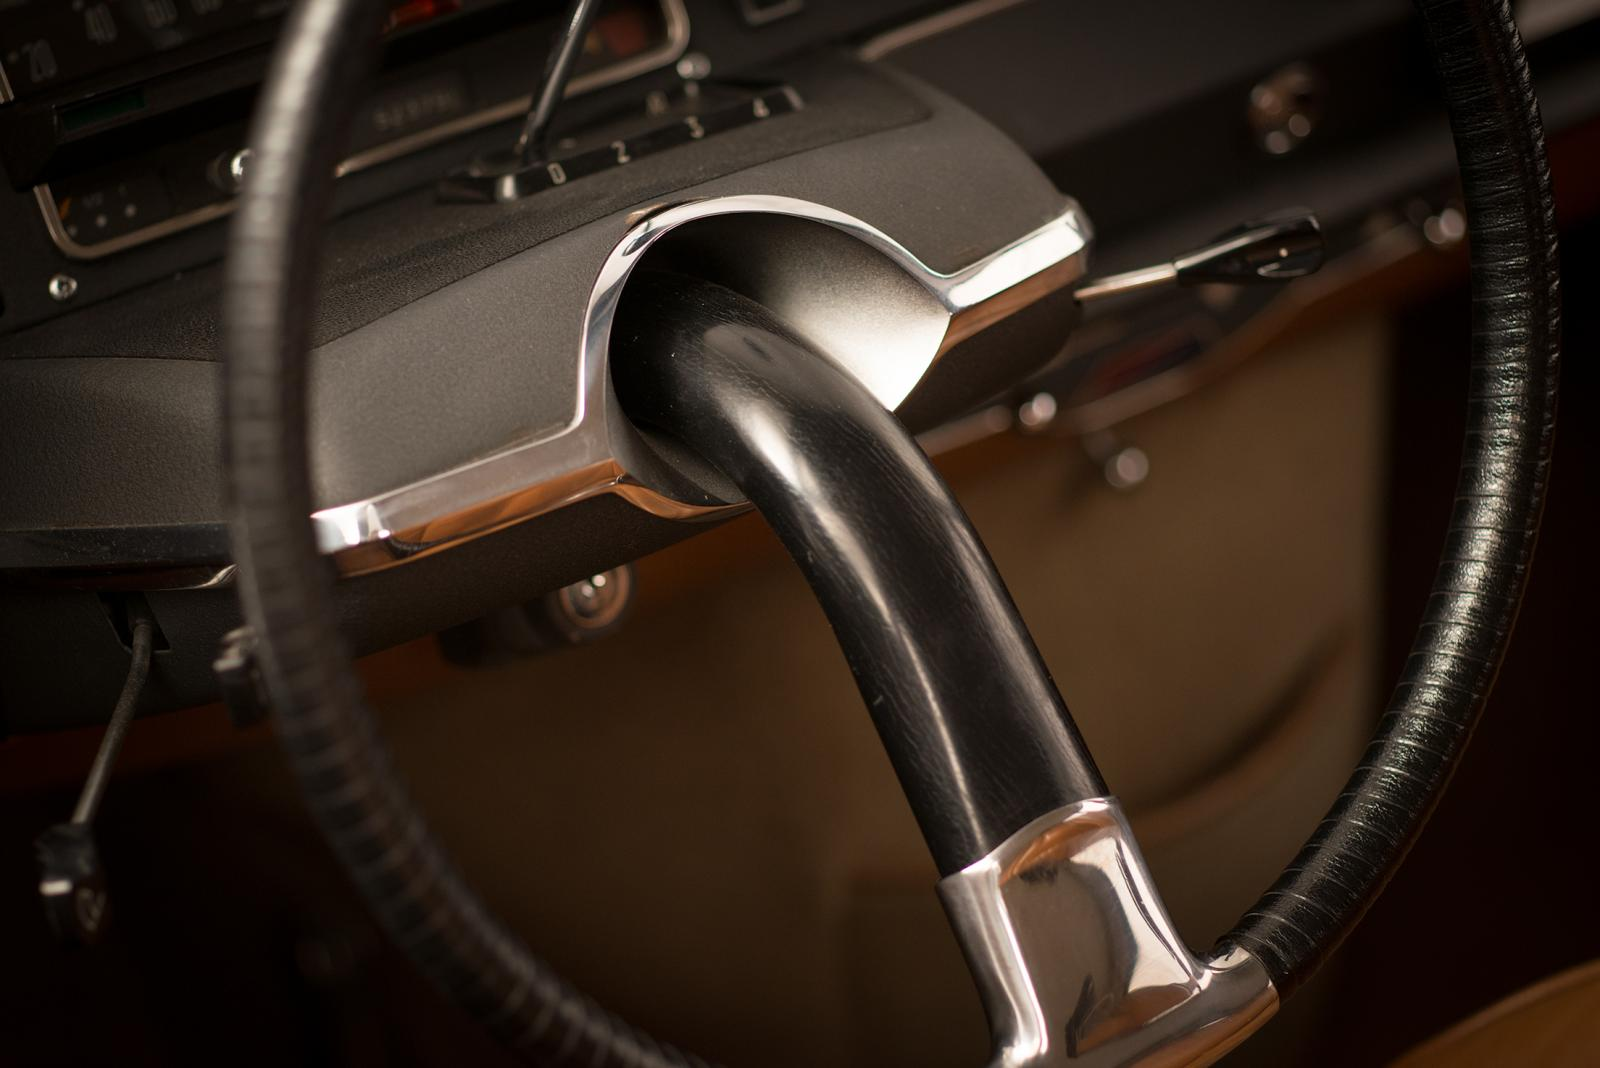 DS 21-Steering wheel